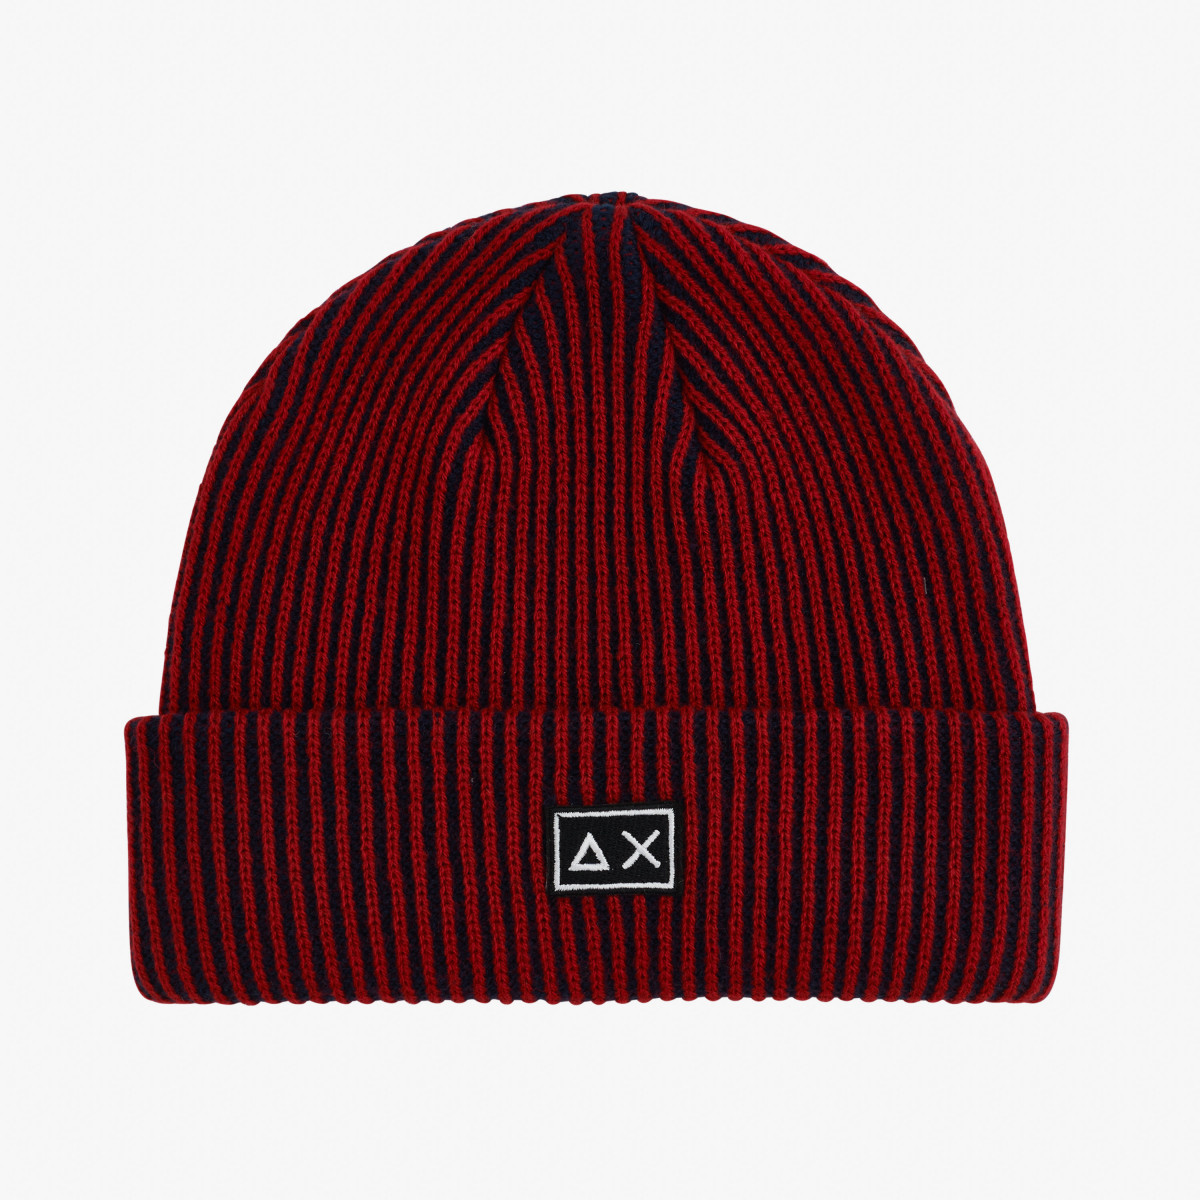 CAP BICOLOR RED/NAVY BLUE